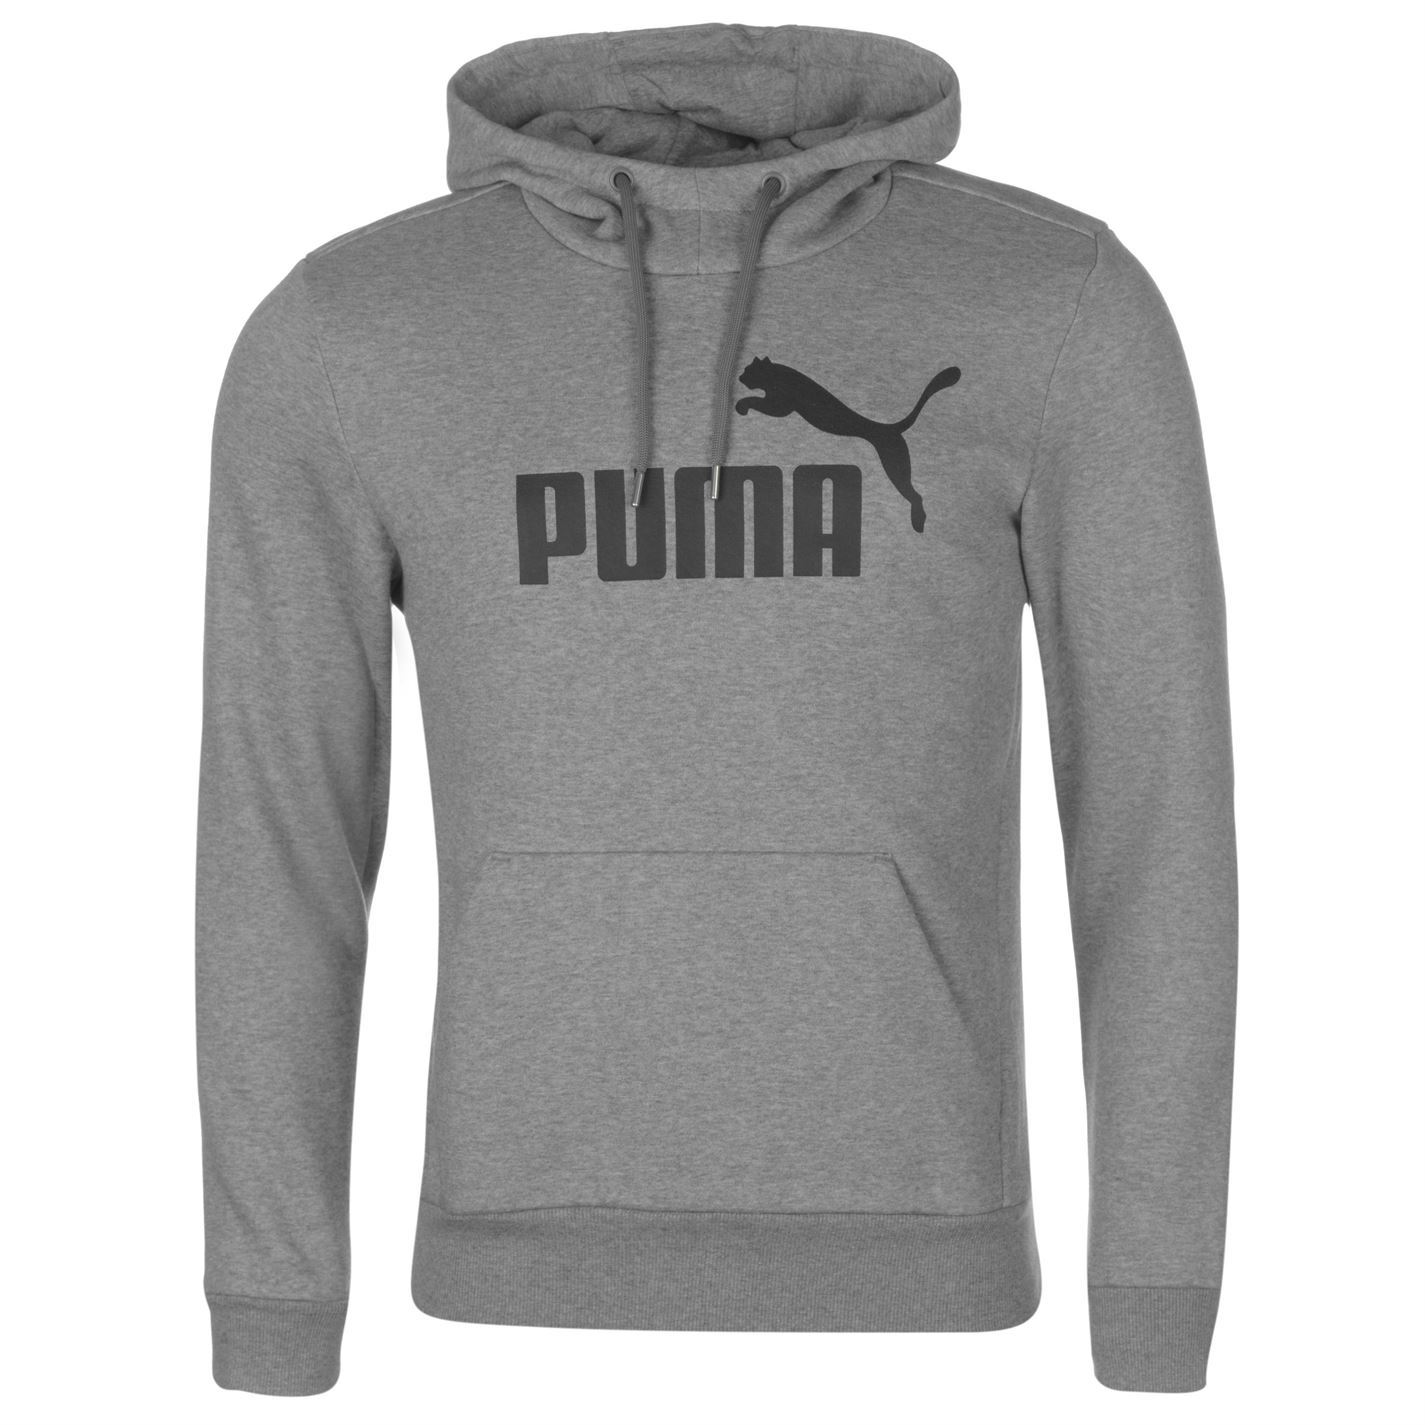 640e60eb Details about Puma Mens No1 OTH Hoody Hoodie Hooded Top Long Sleeve Cotton  Kangaroo Pocket